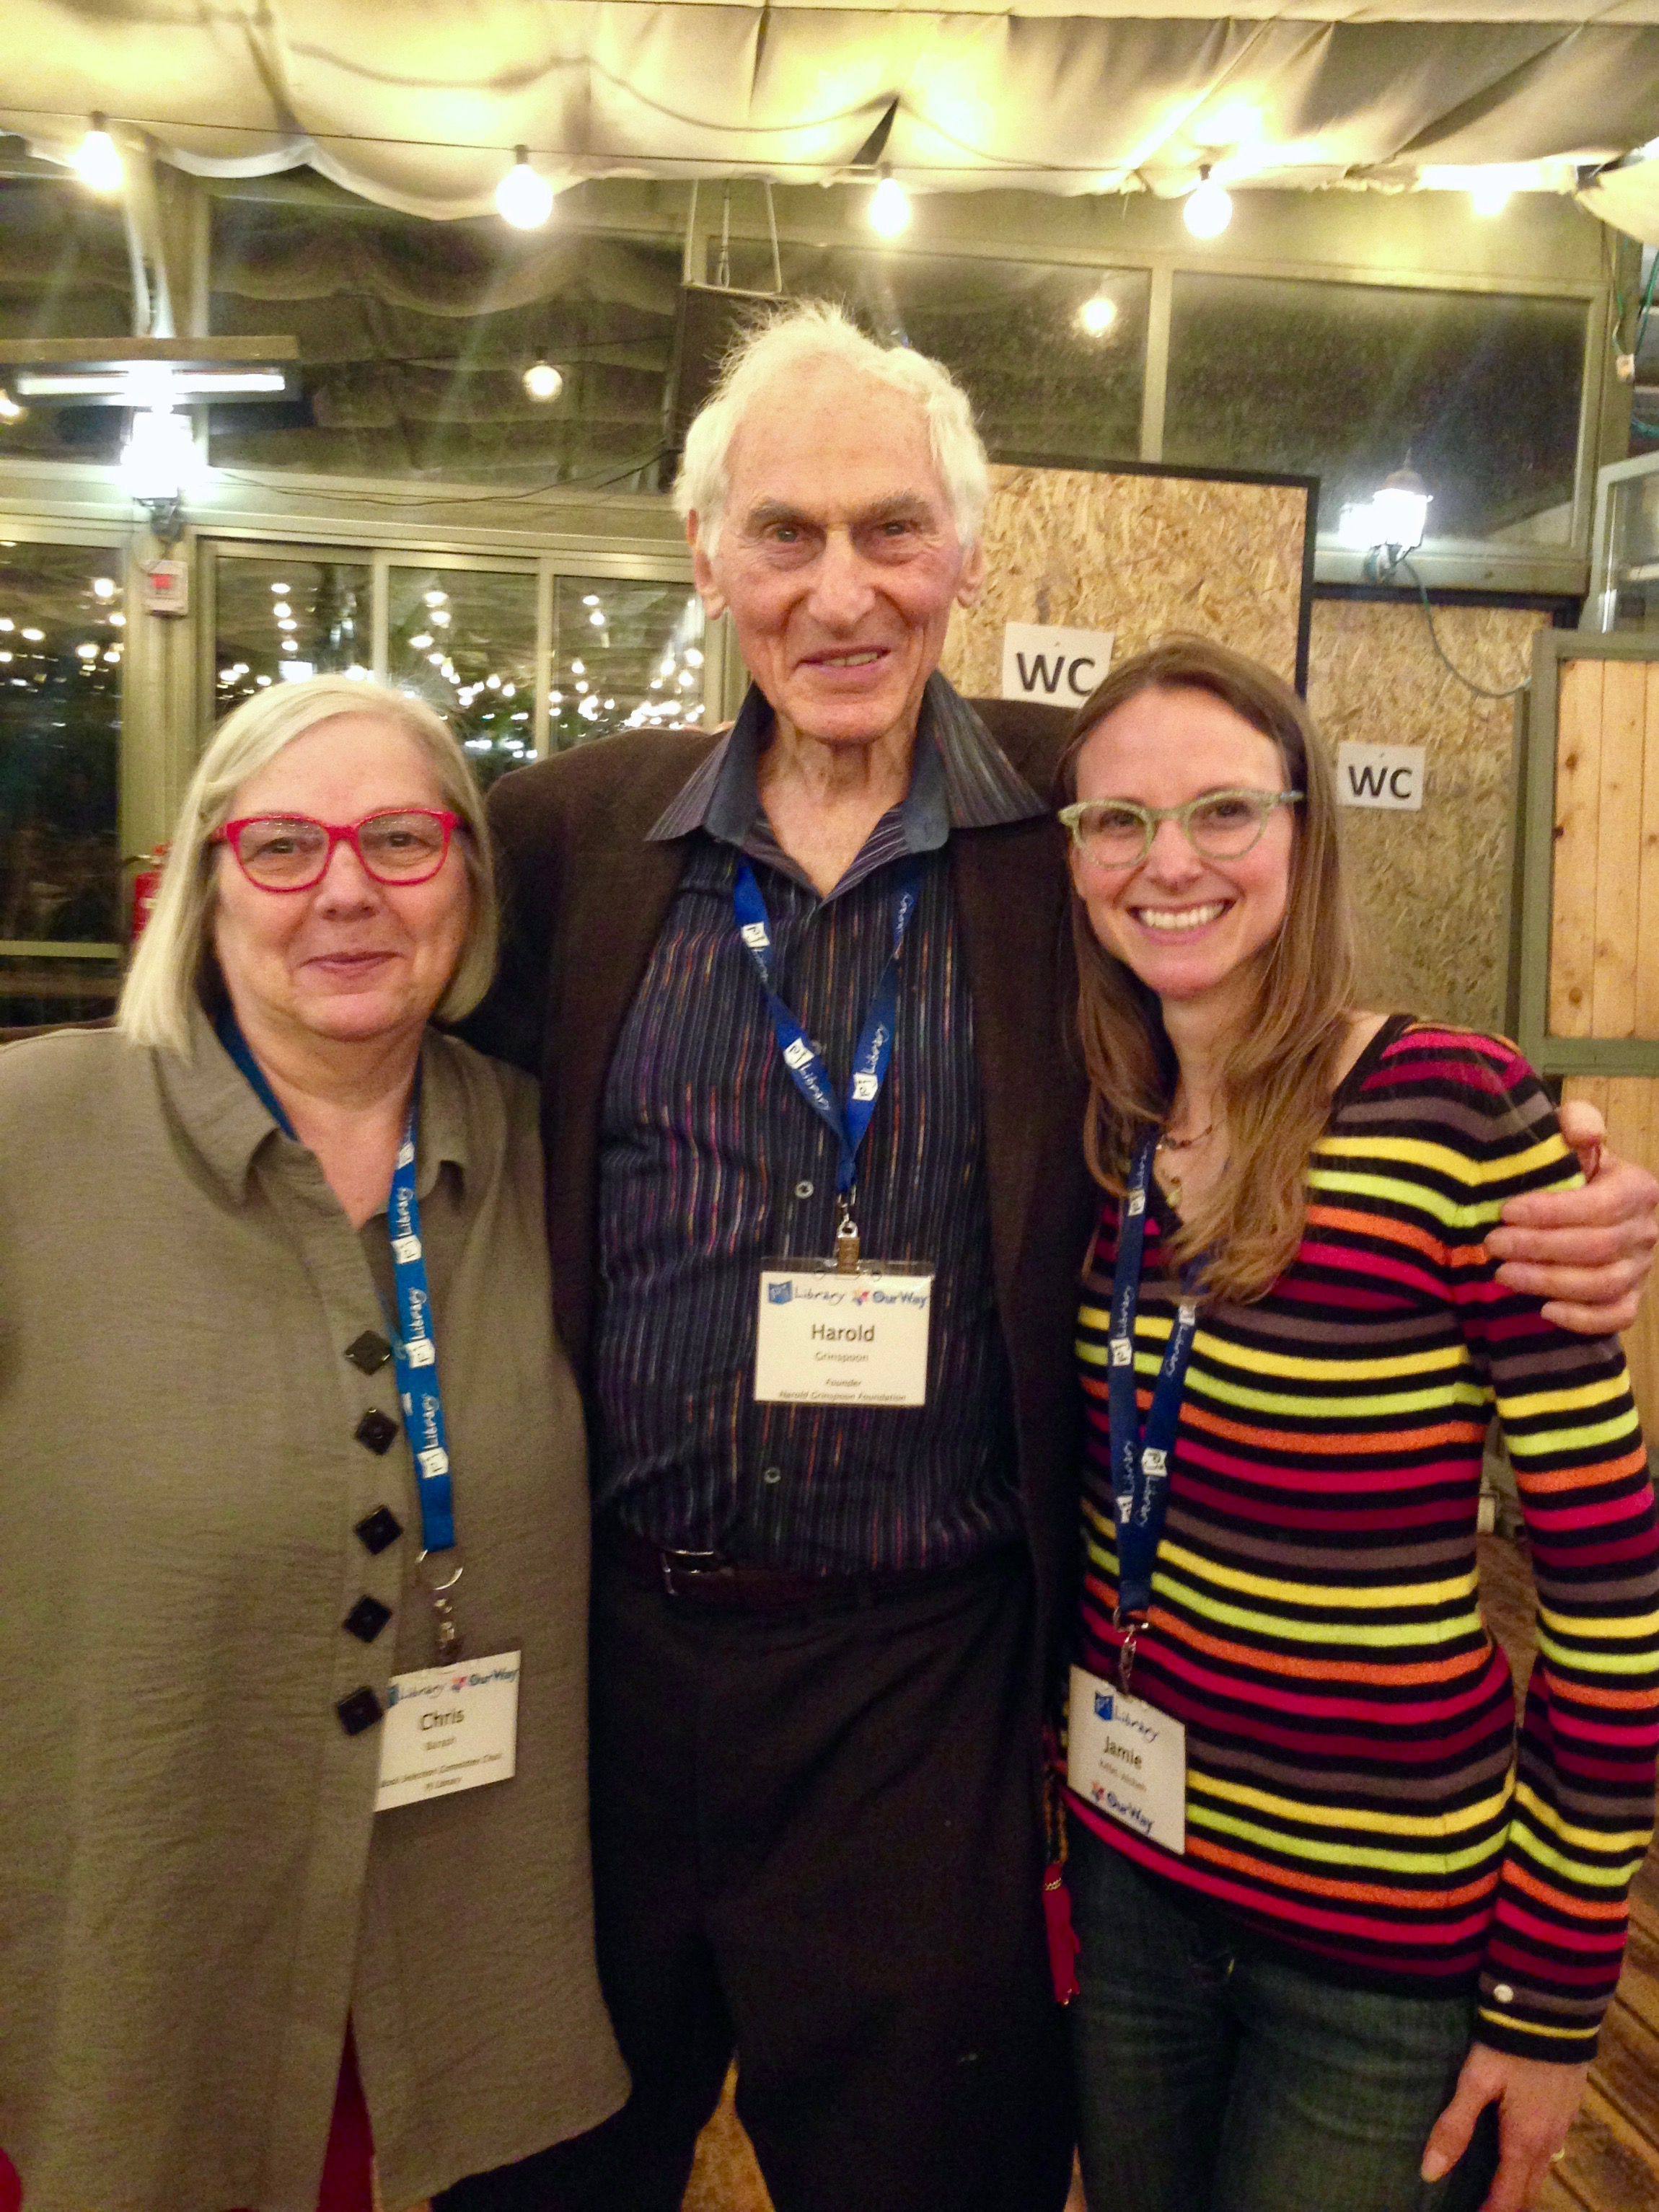 With PJ Library editor Chris Barash and Harold Grinspoon of the Harold Grinspoon Foundation